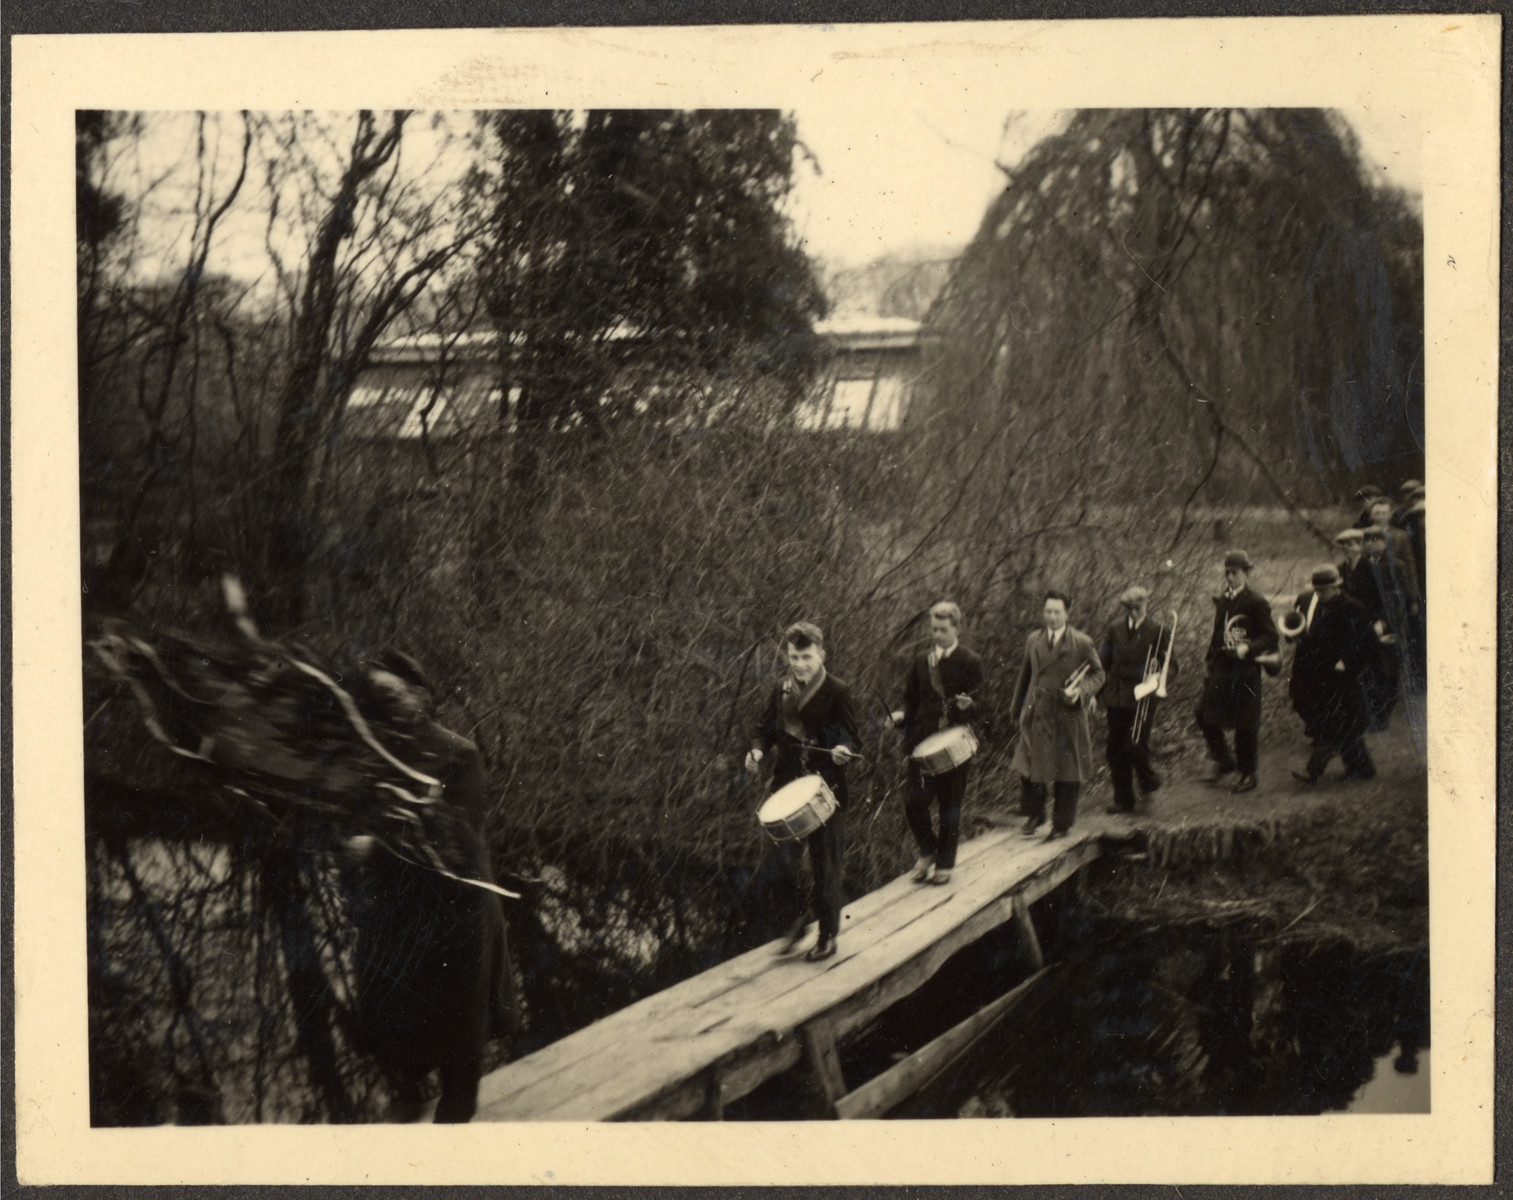 Students many of them German Jewish refugees, march with muscial instruments across a pedestrian bridge at a Quaker boarding school in Eerde.